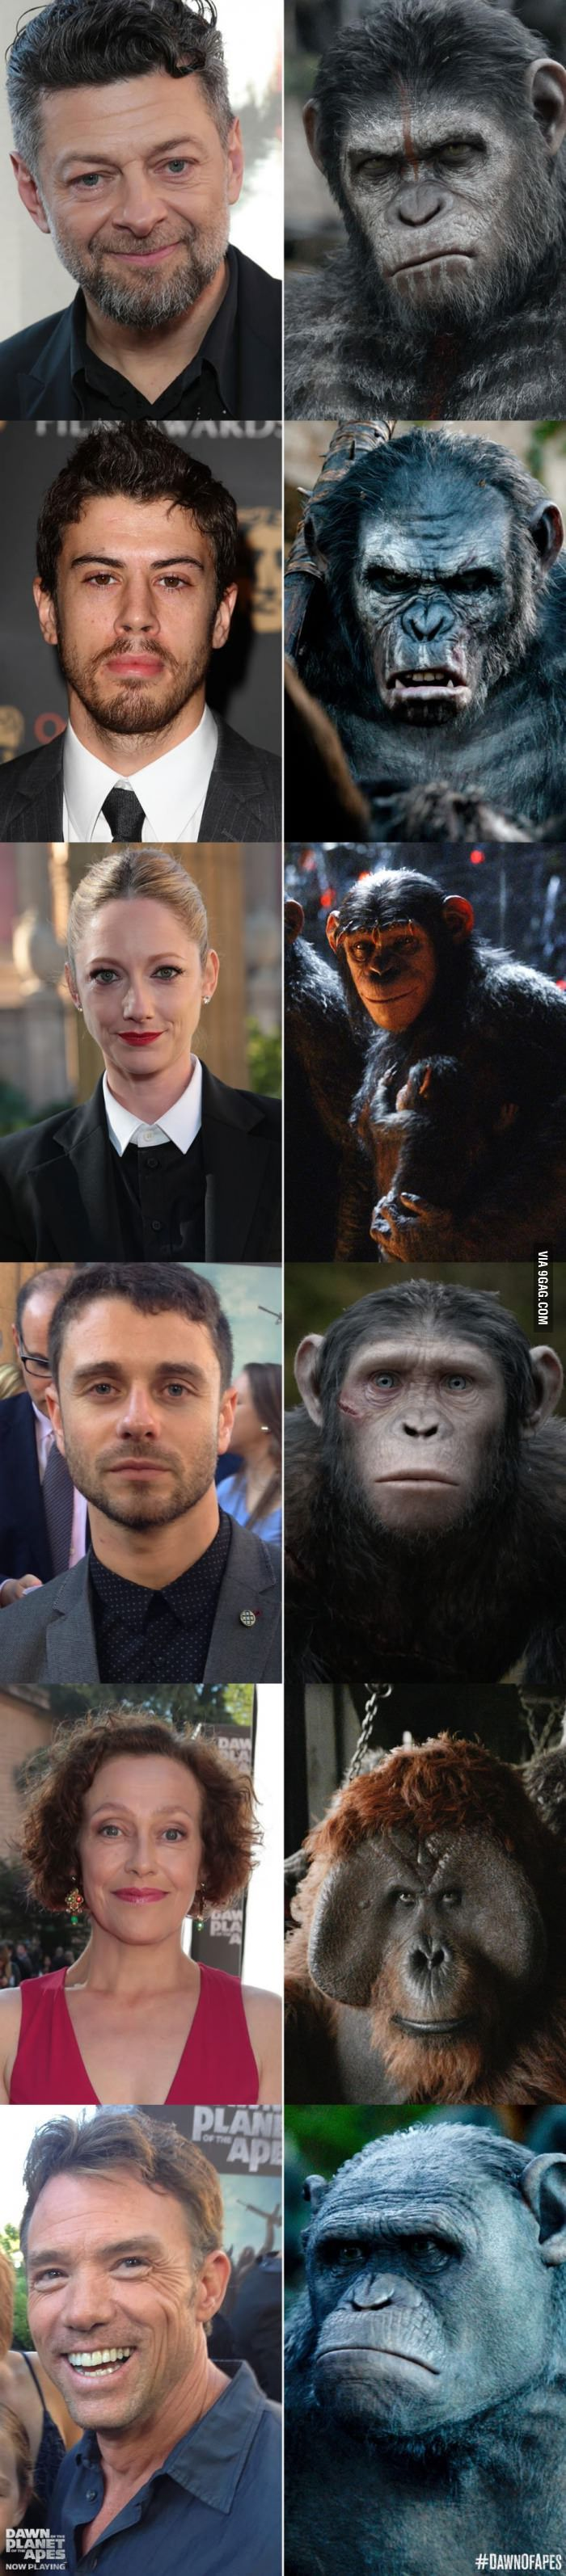 Dawn of the Planet of the Apes Cast and Character Highlights